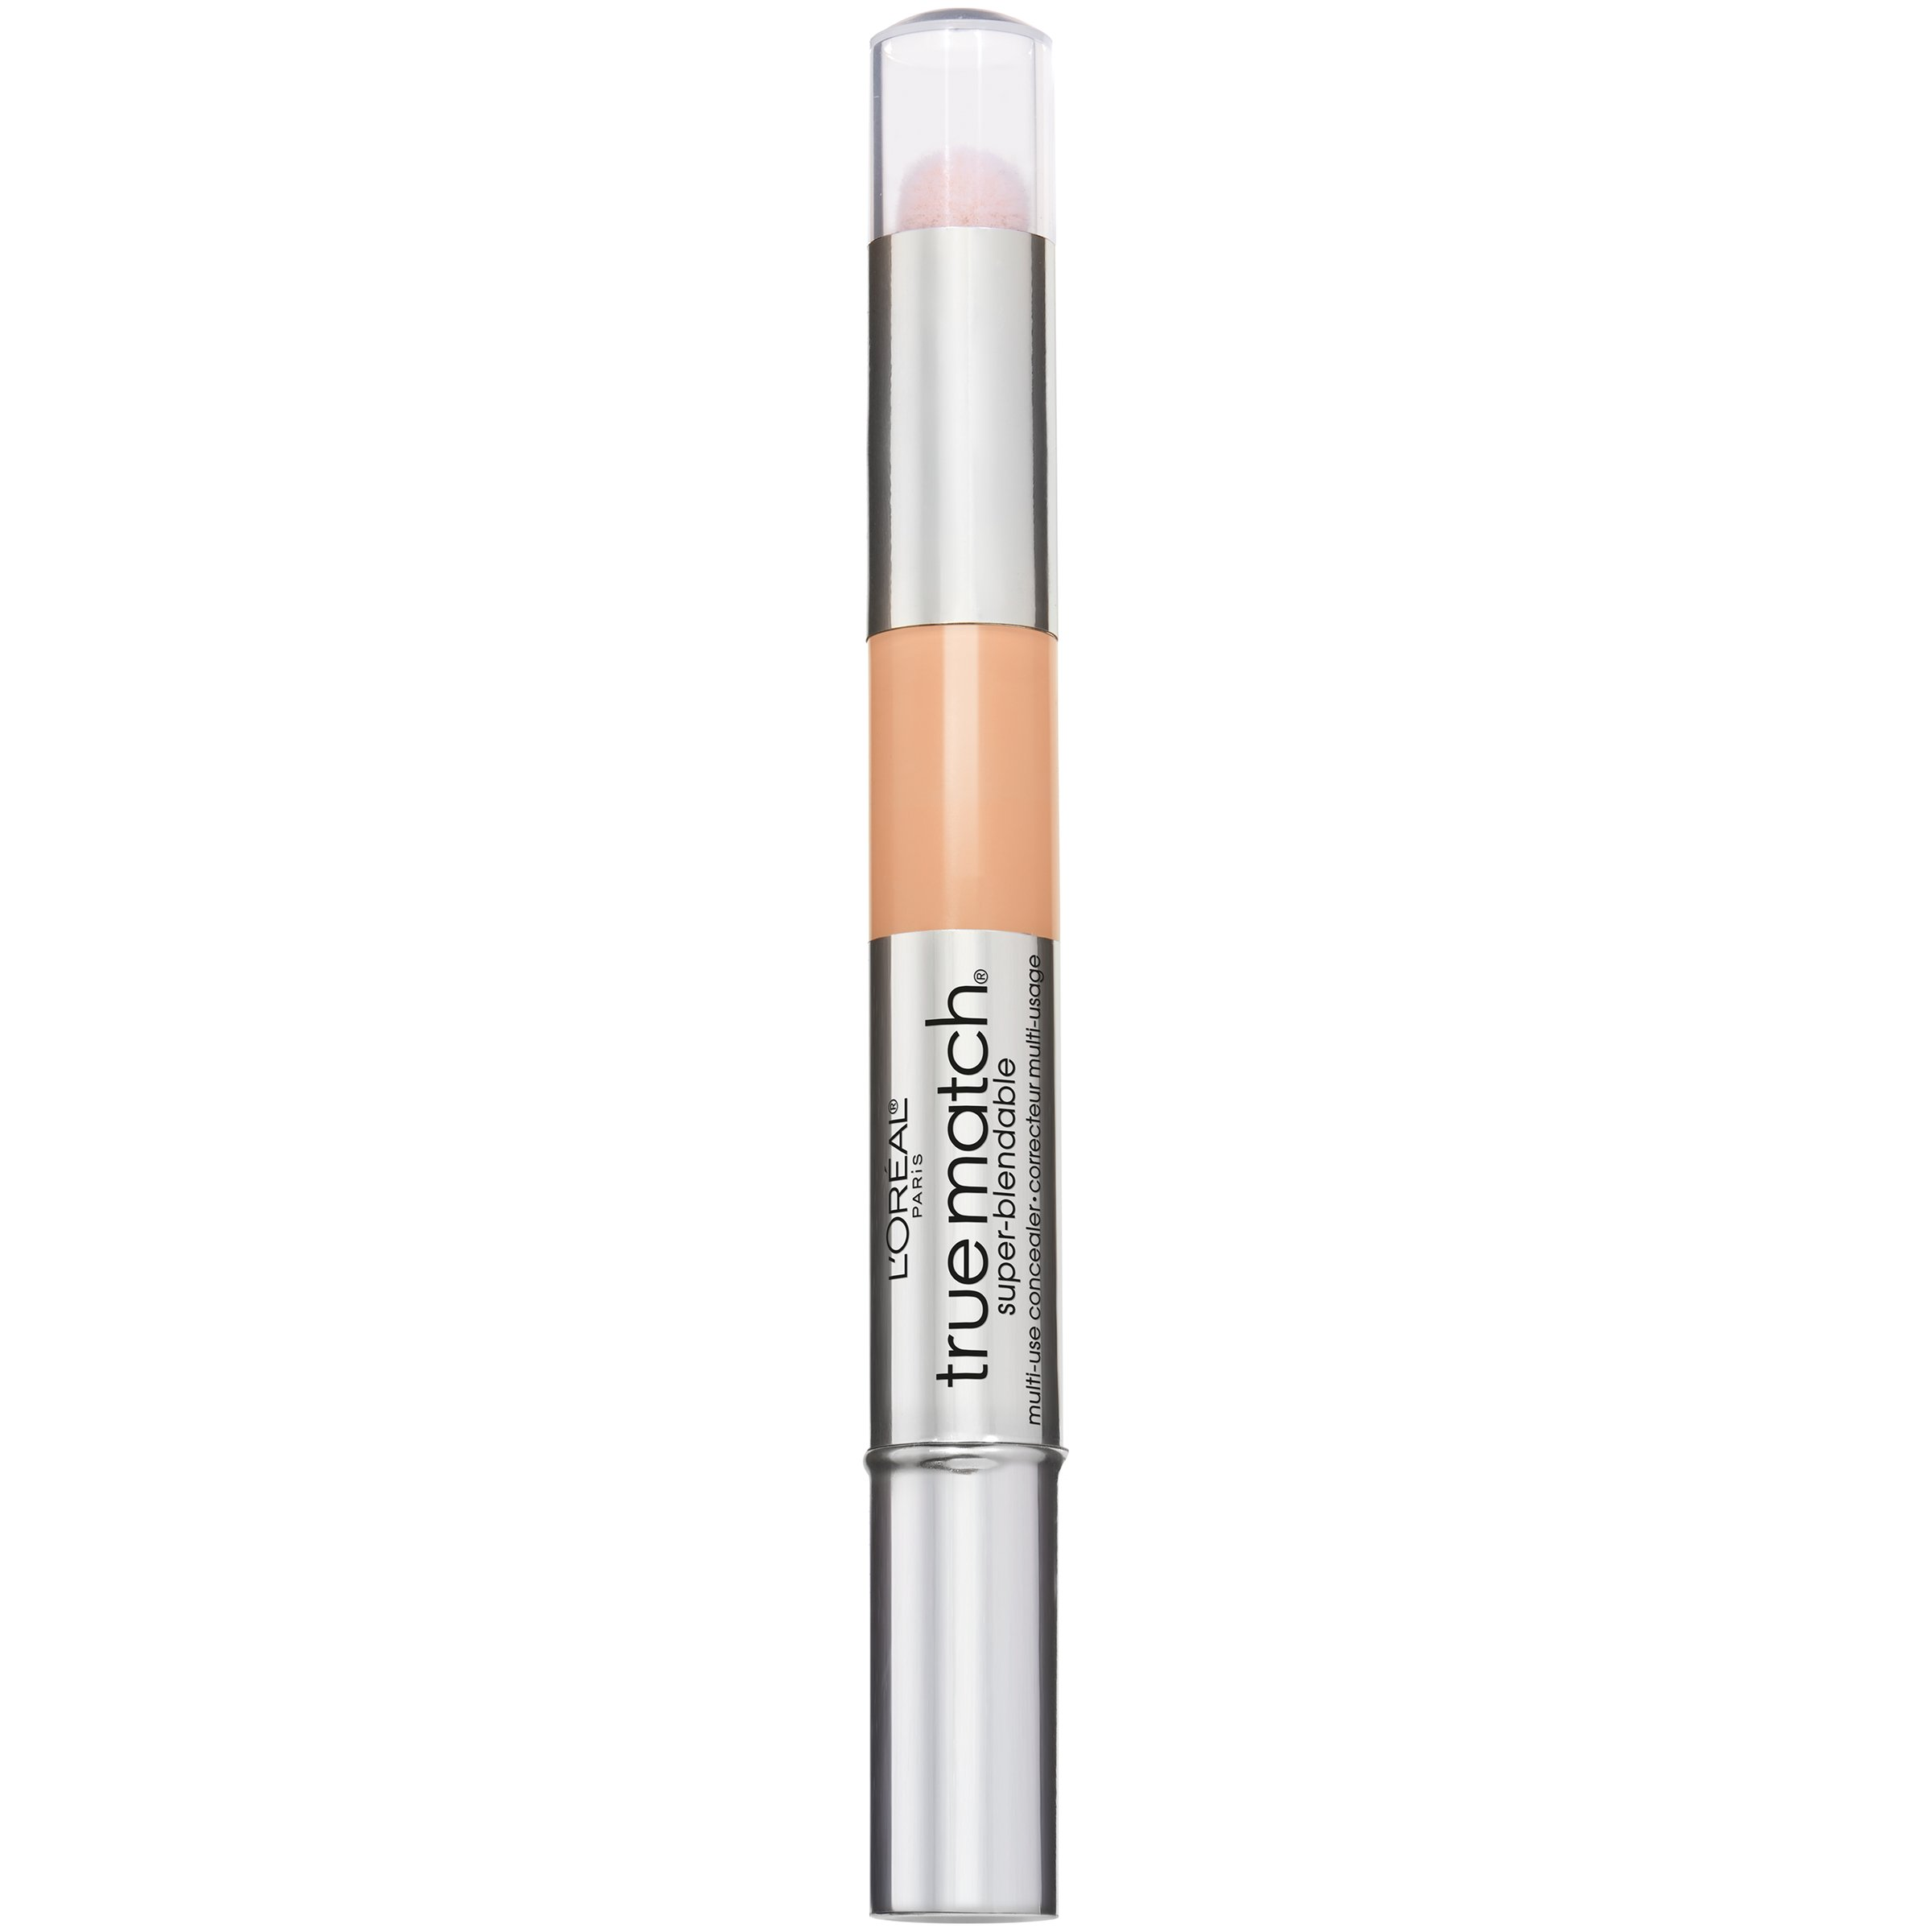 L'Oreal Paris Cosmetics True Match Super-Blendable Multi-Use Concealer Makeup, Light C3-4, 0.05 Fluid Ounce